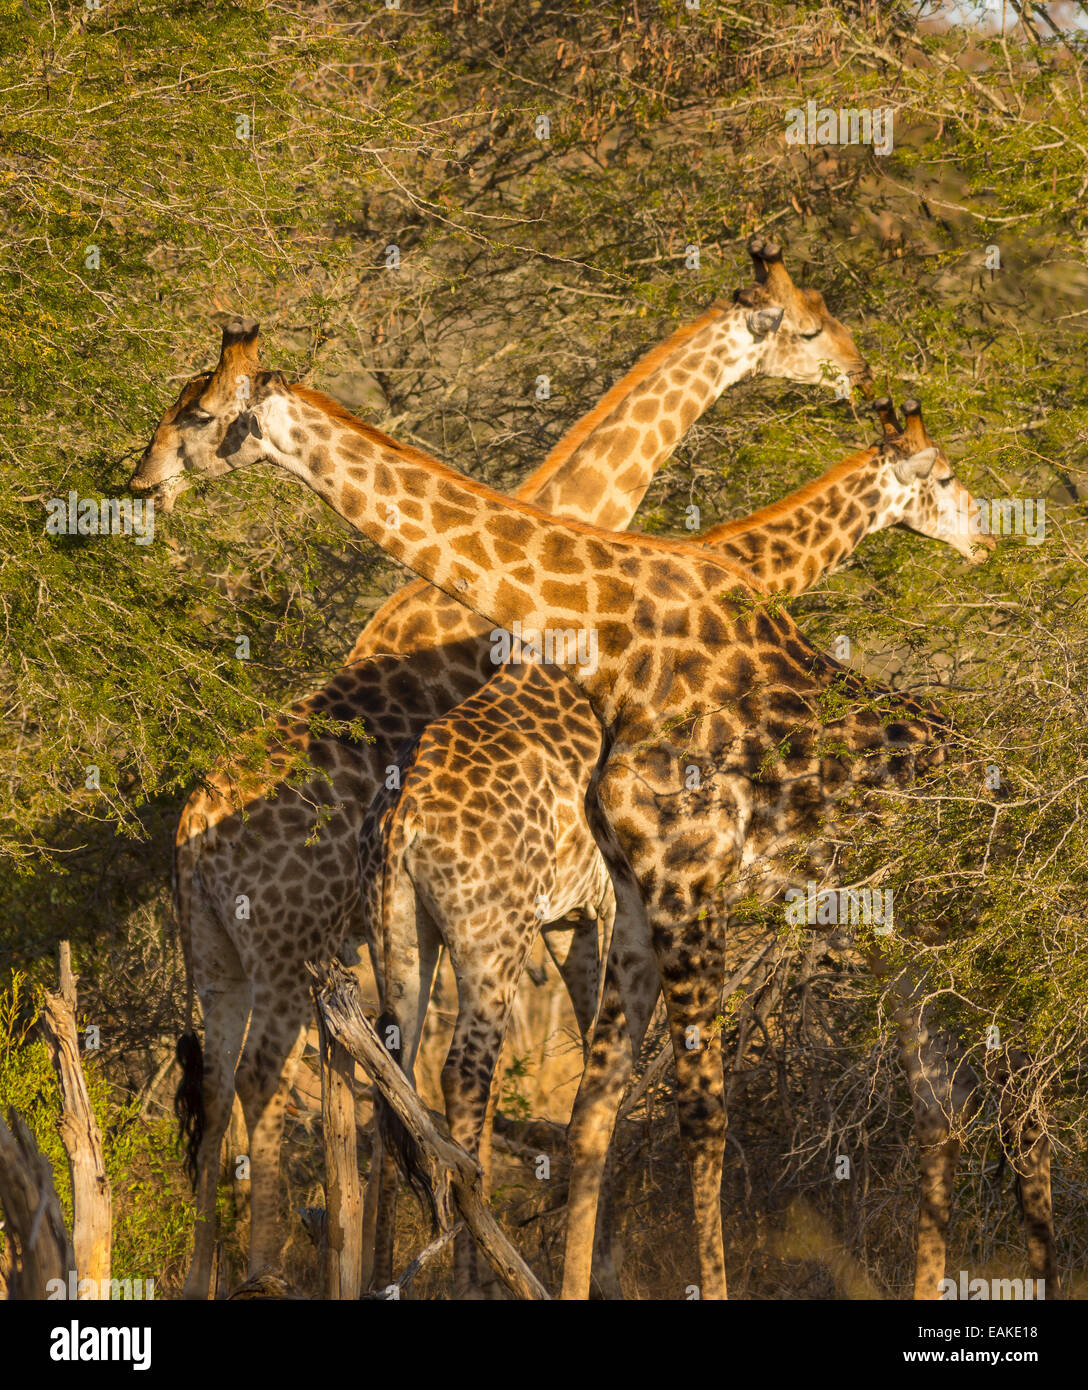 KRUGER NATIONAL PARK, SOUTH AFRICA - Three giraffe feeding in trees. - Stock Image